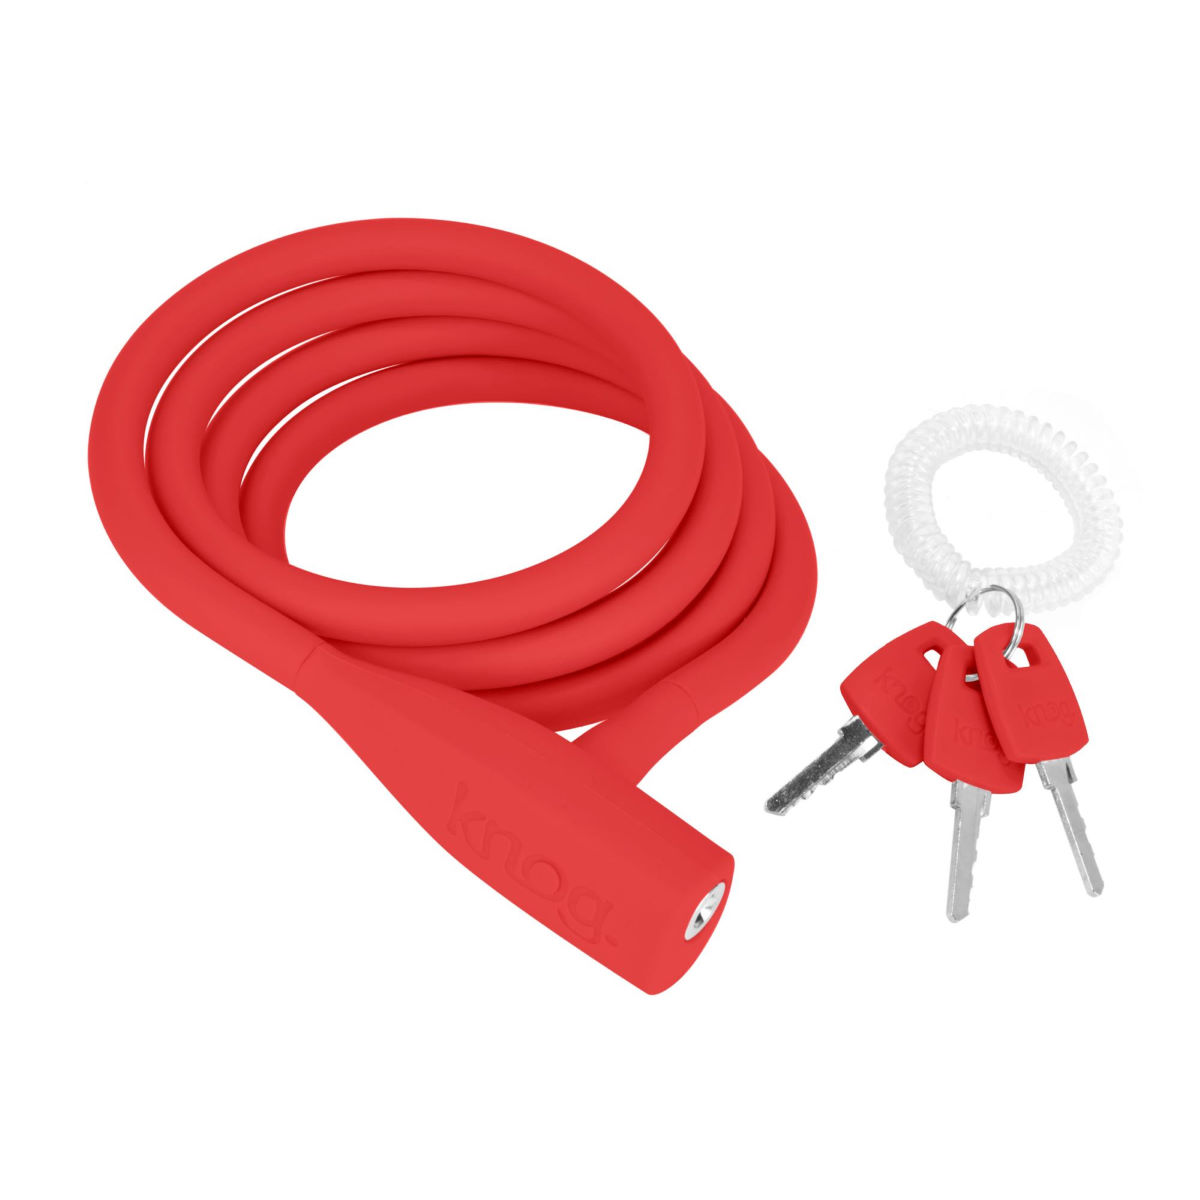 Câble antivol Knog Party Coil - 1.3m Rouge Câbles antivol